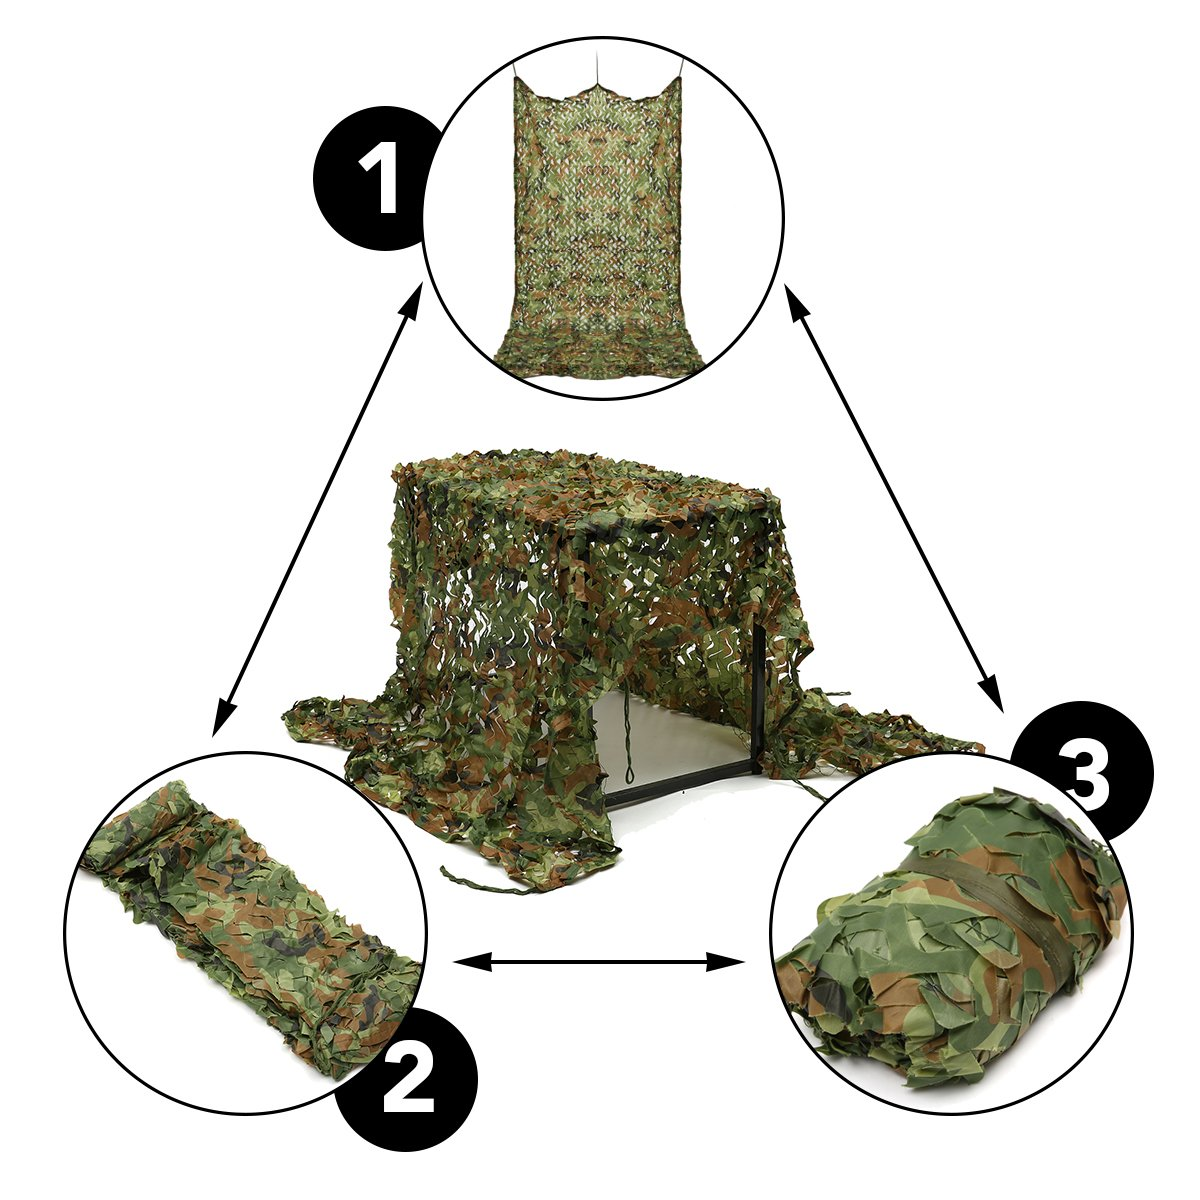 Woodland Camo Net, OUTERDO 6.6ft x 10ft Camouflage Netting Military Desert Camo Netting Camping Hunting Shooting Blind Sunscreen Netting Camouflage Party Decoration on Halloween Christmas by OUTERDO (Image #7)